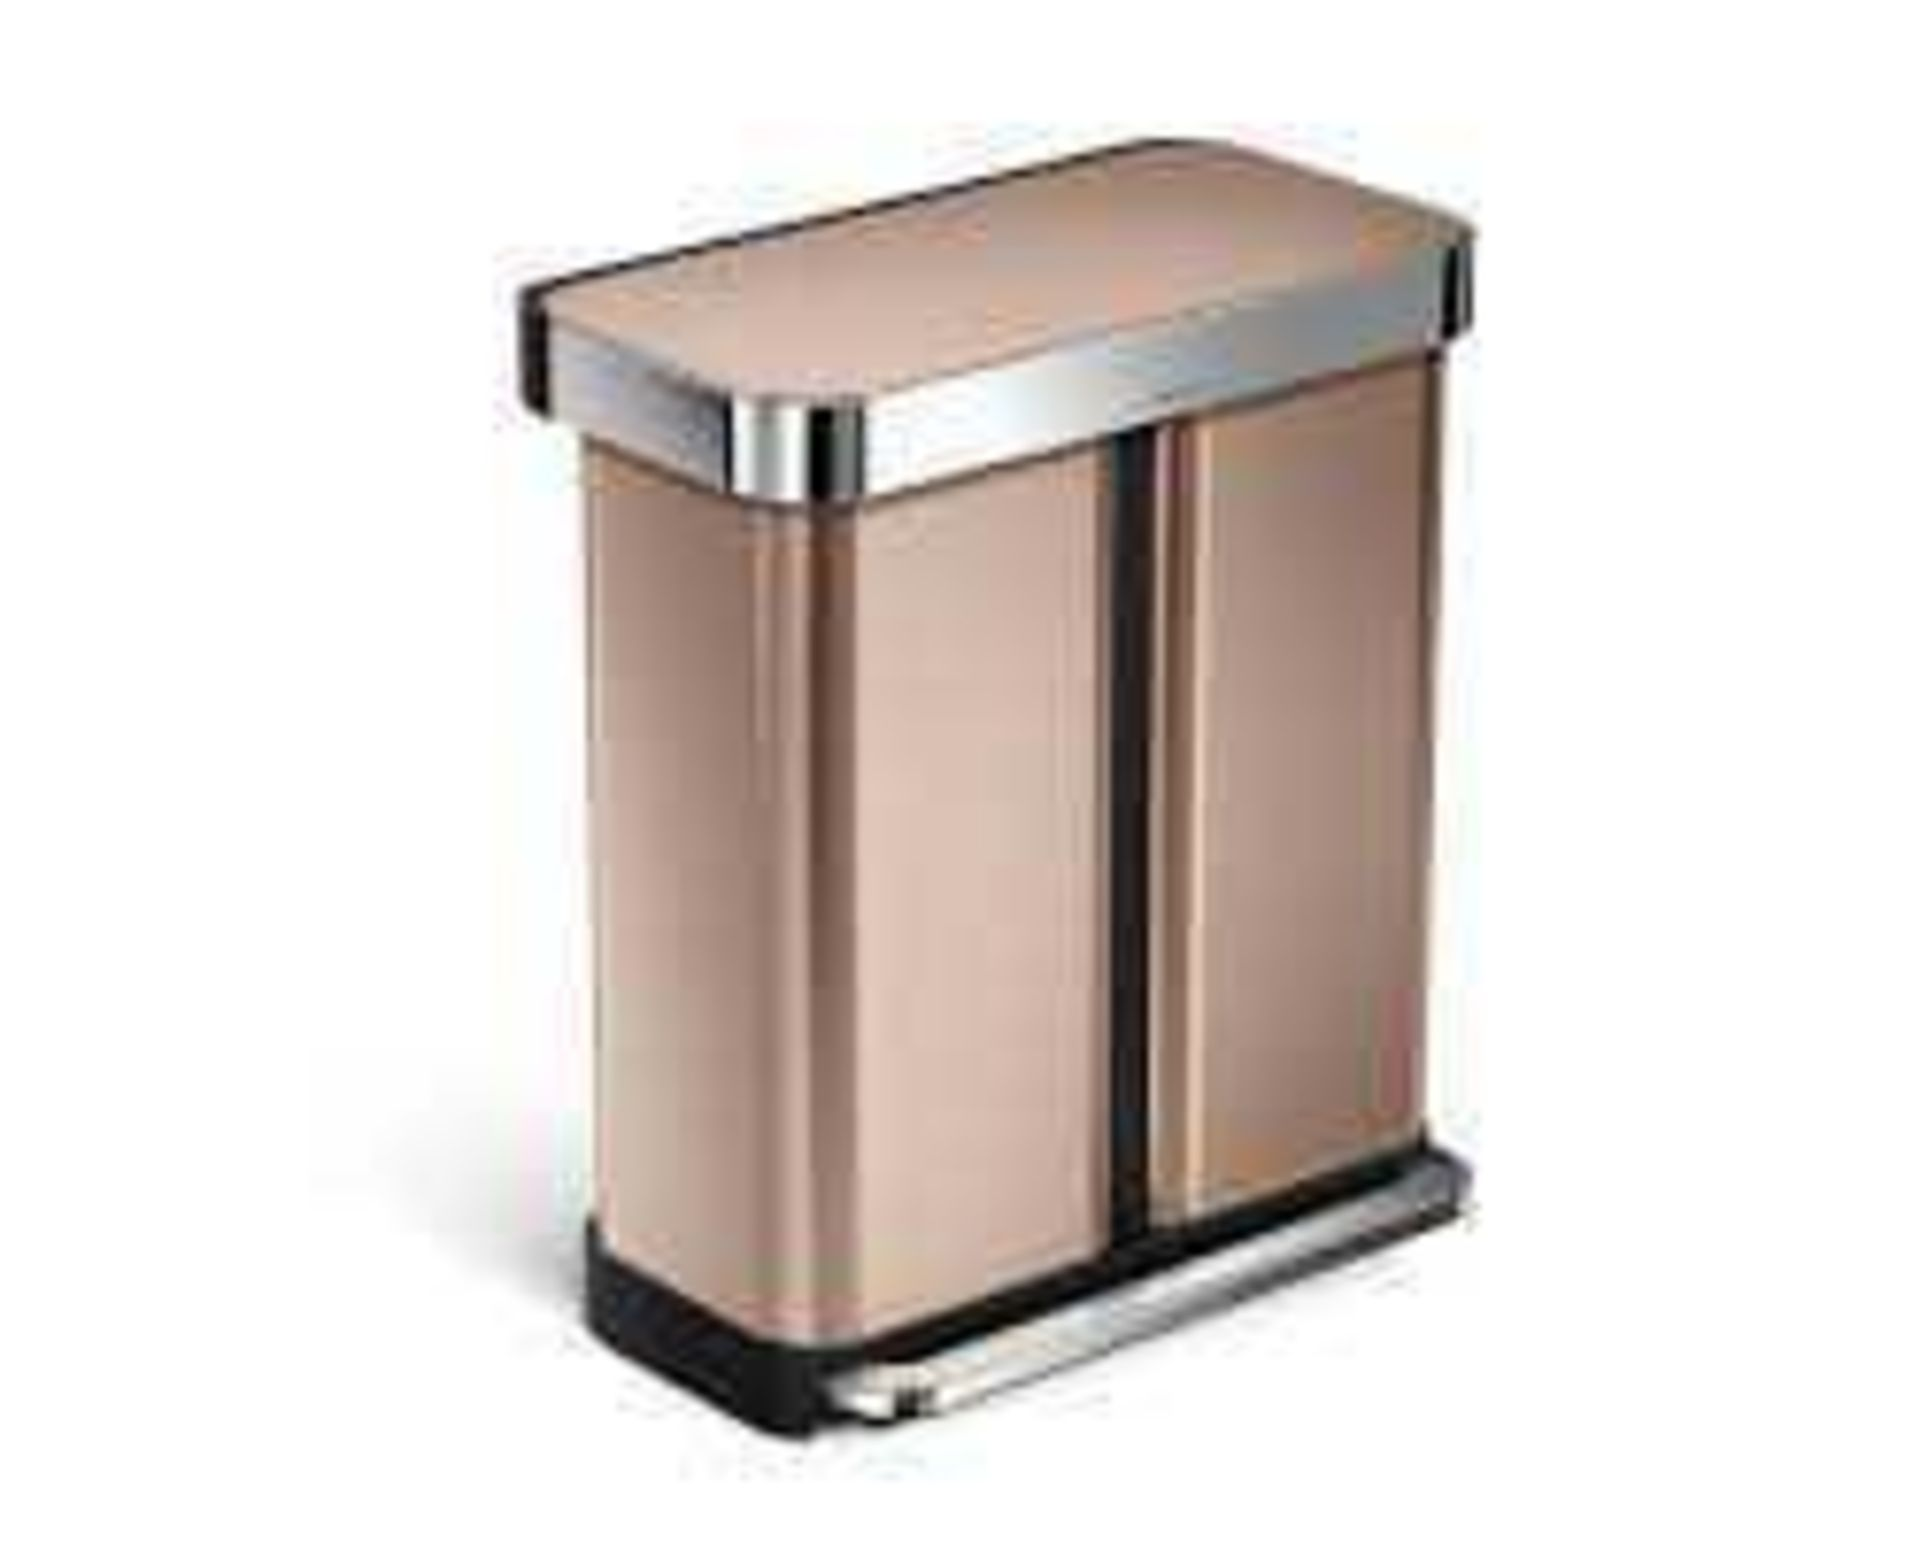 Rrp £280 Boxed Simplehuman Sensor Recycling Bin With Voice Sensor And Motion Sensor In Rose Gold Wit